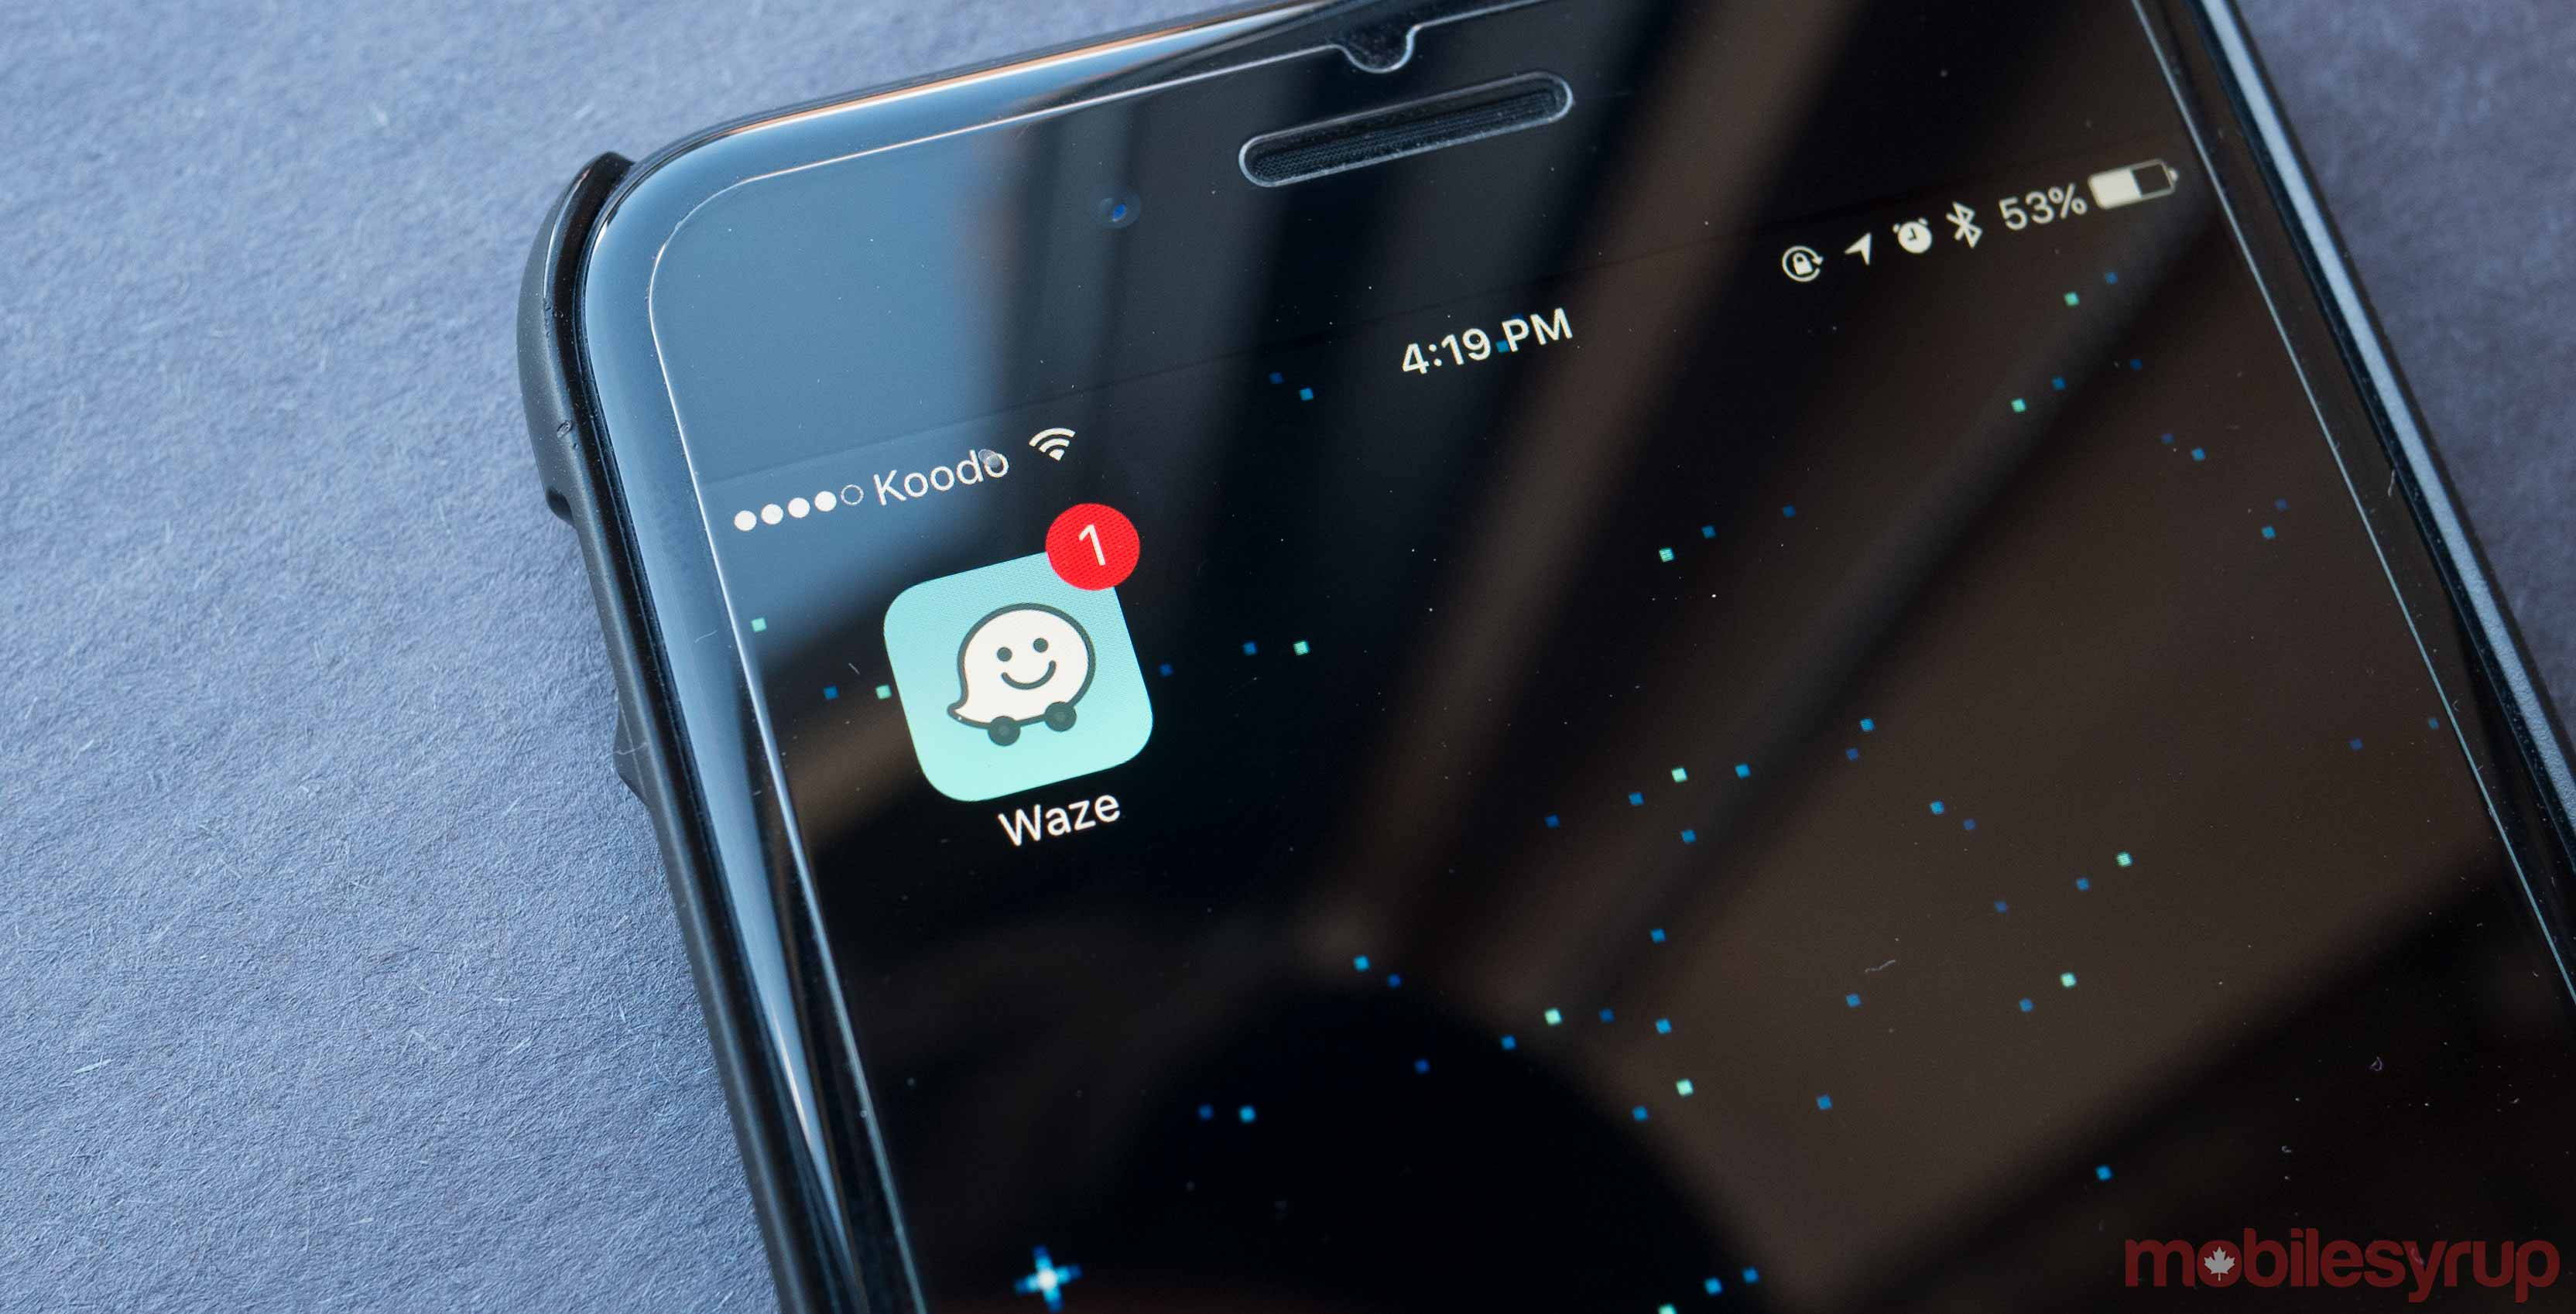 How to stop Waze from gobbling up your iPhone's battery life